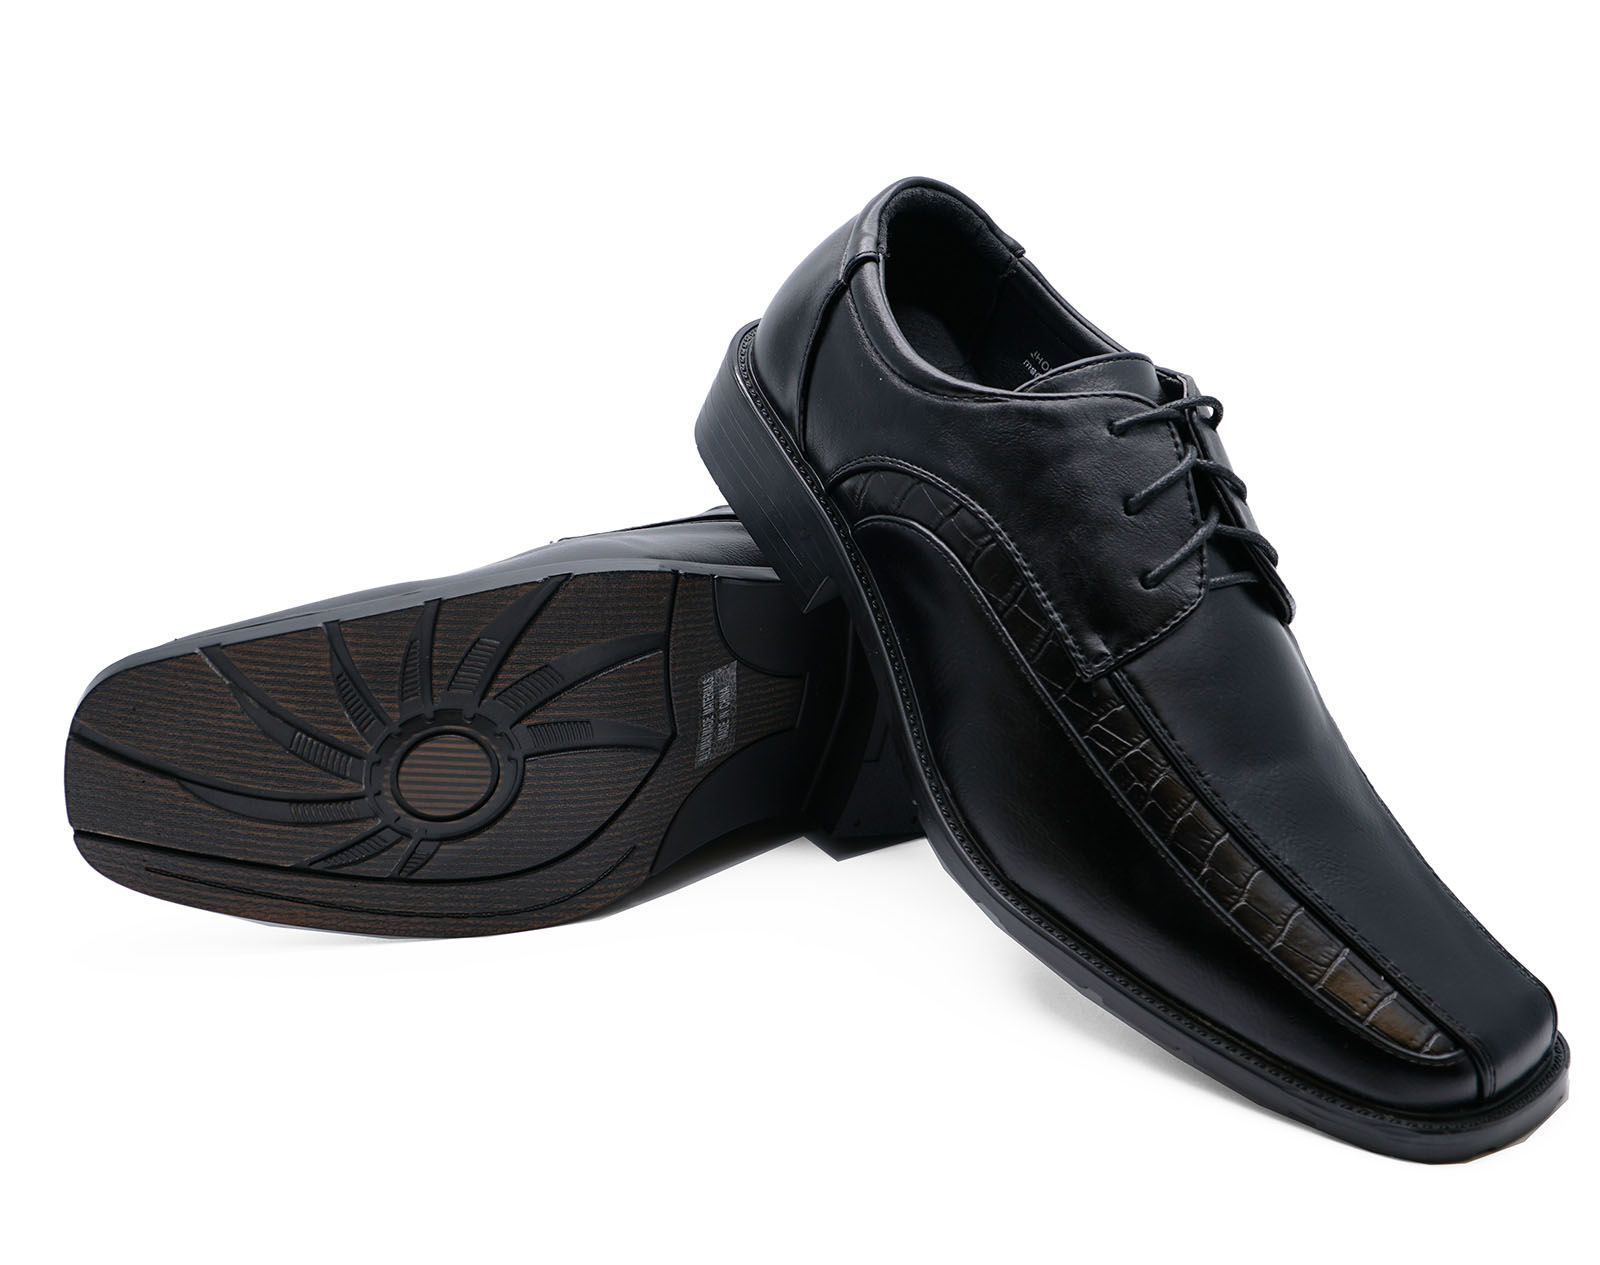 MENS BLACK LACE-UP WORK WEDDING SMART COMFY LOAFERS FORMAL SHOES SIZES 5-10